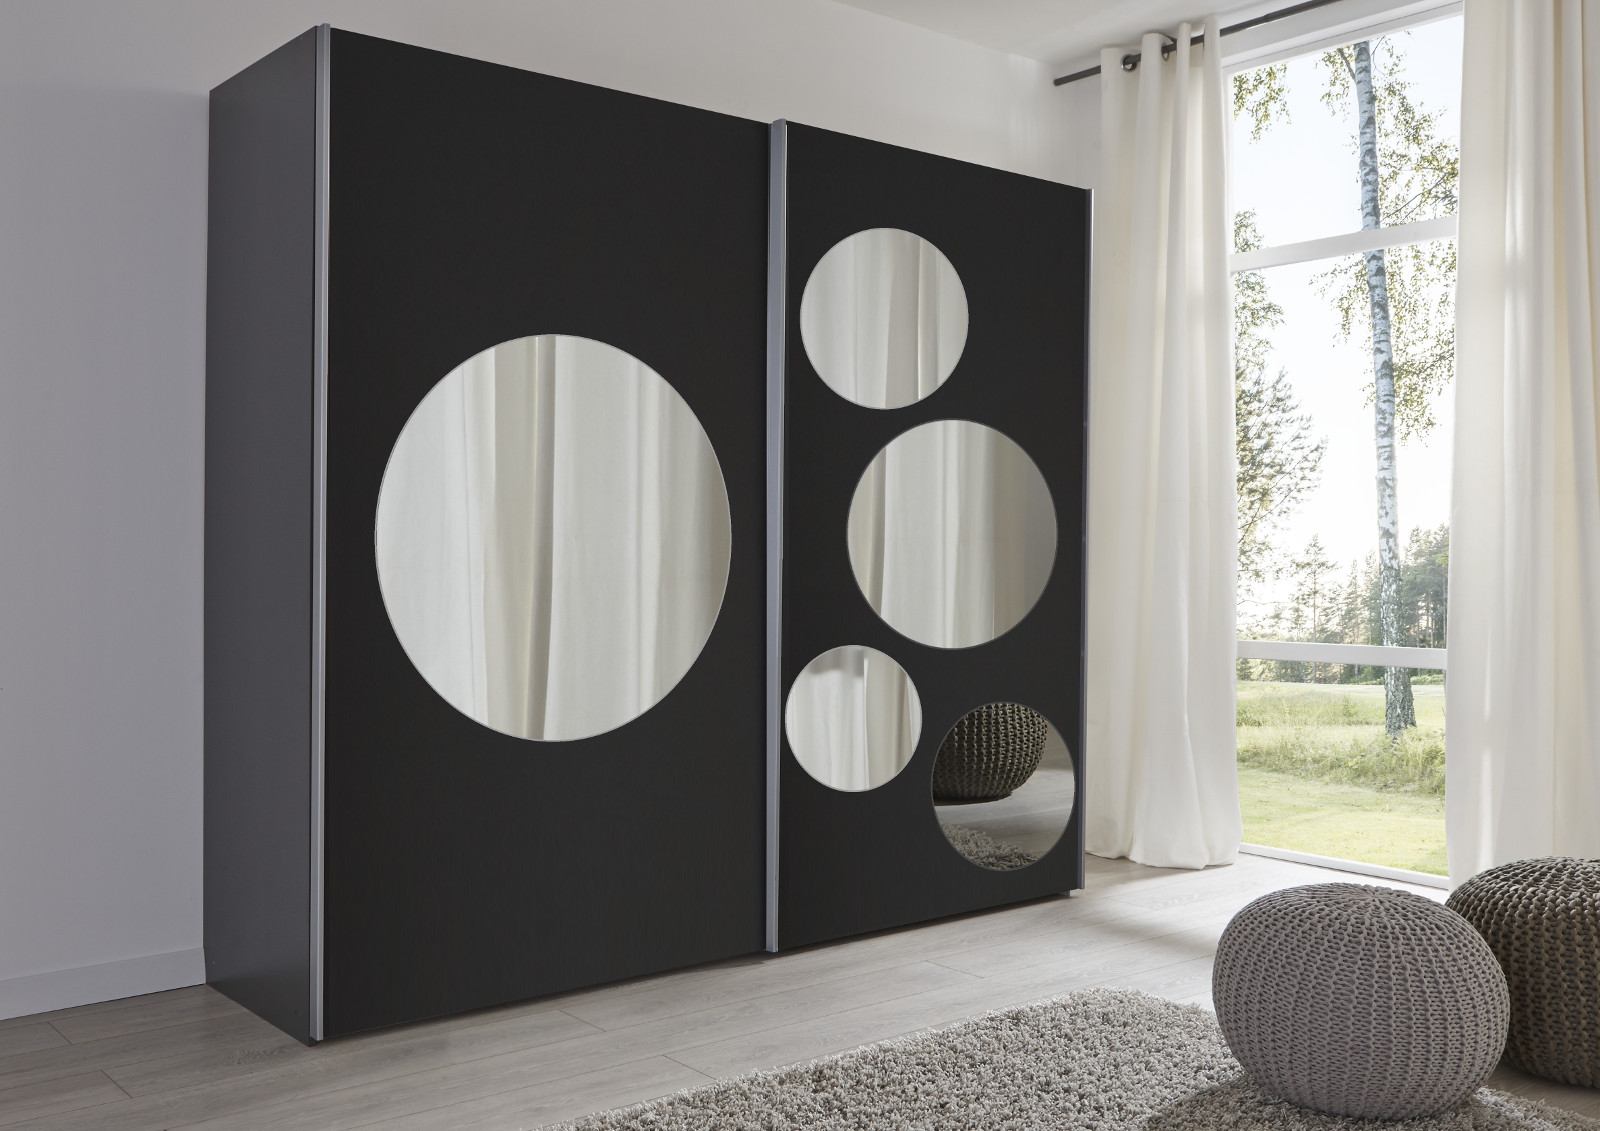 schwebet renschrank schwarz spiegel rundspiegel. Black Bedroom Furniture Sets. Home Design Ideas